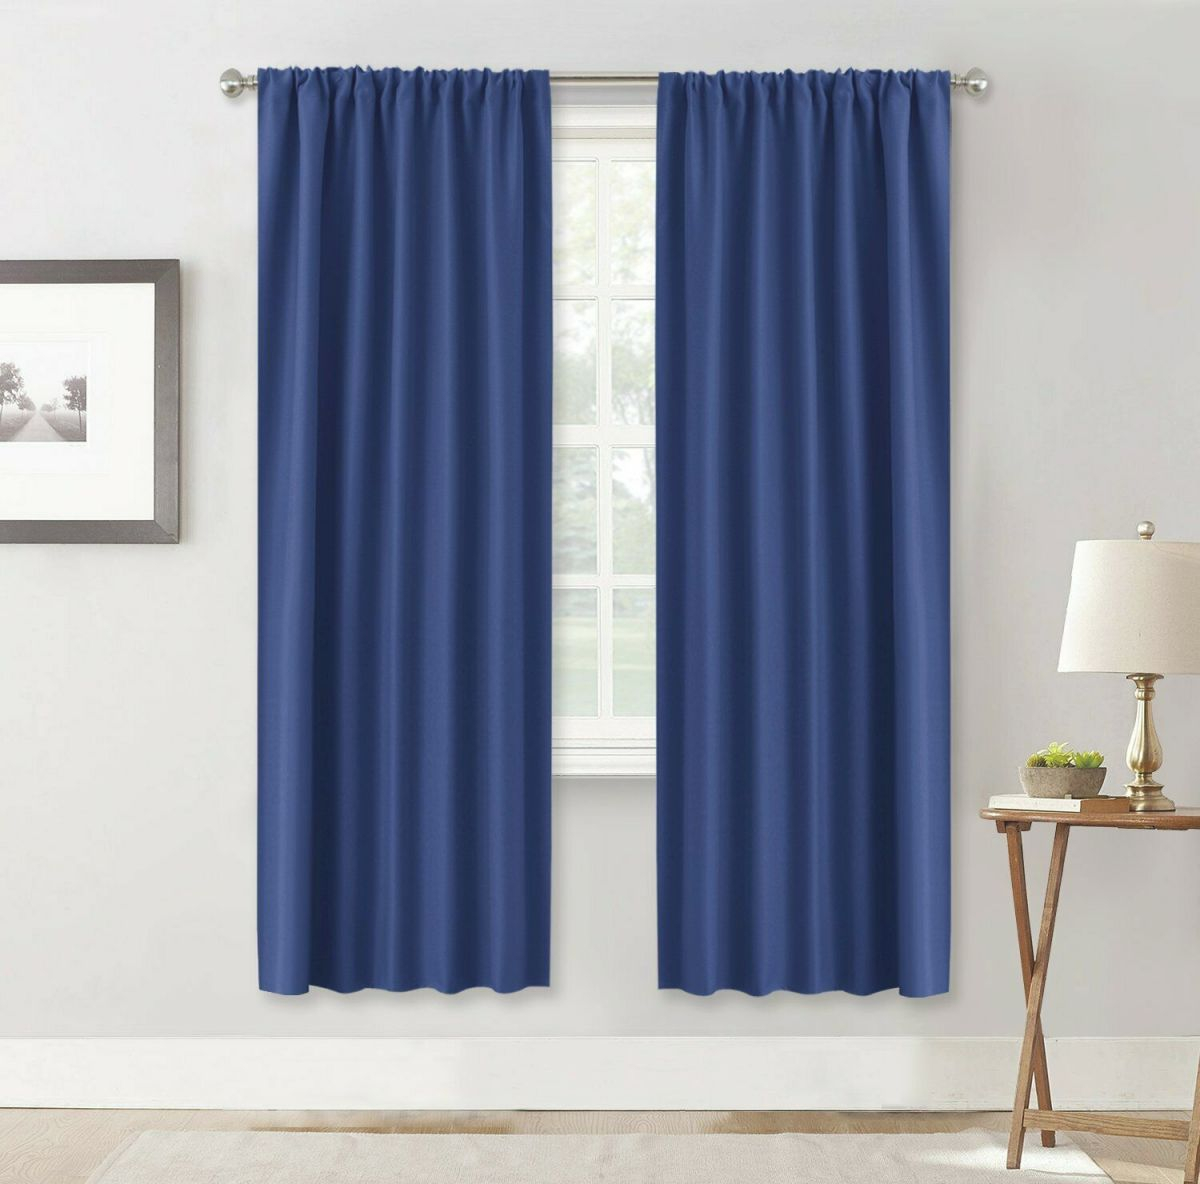 Blackout Curtain Rod Pocket Light Blocking Drape For Bedroom/Living Room,2 Panel for 10+ Unique Gallery Burgundy Curtains For Living Room